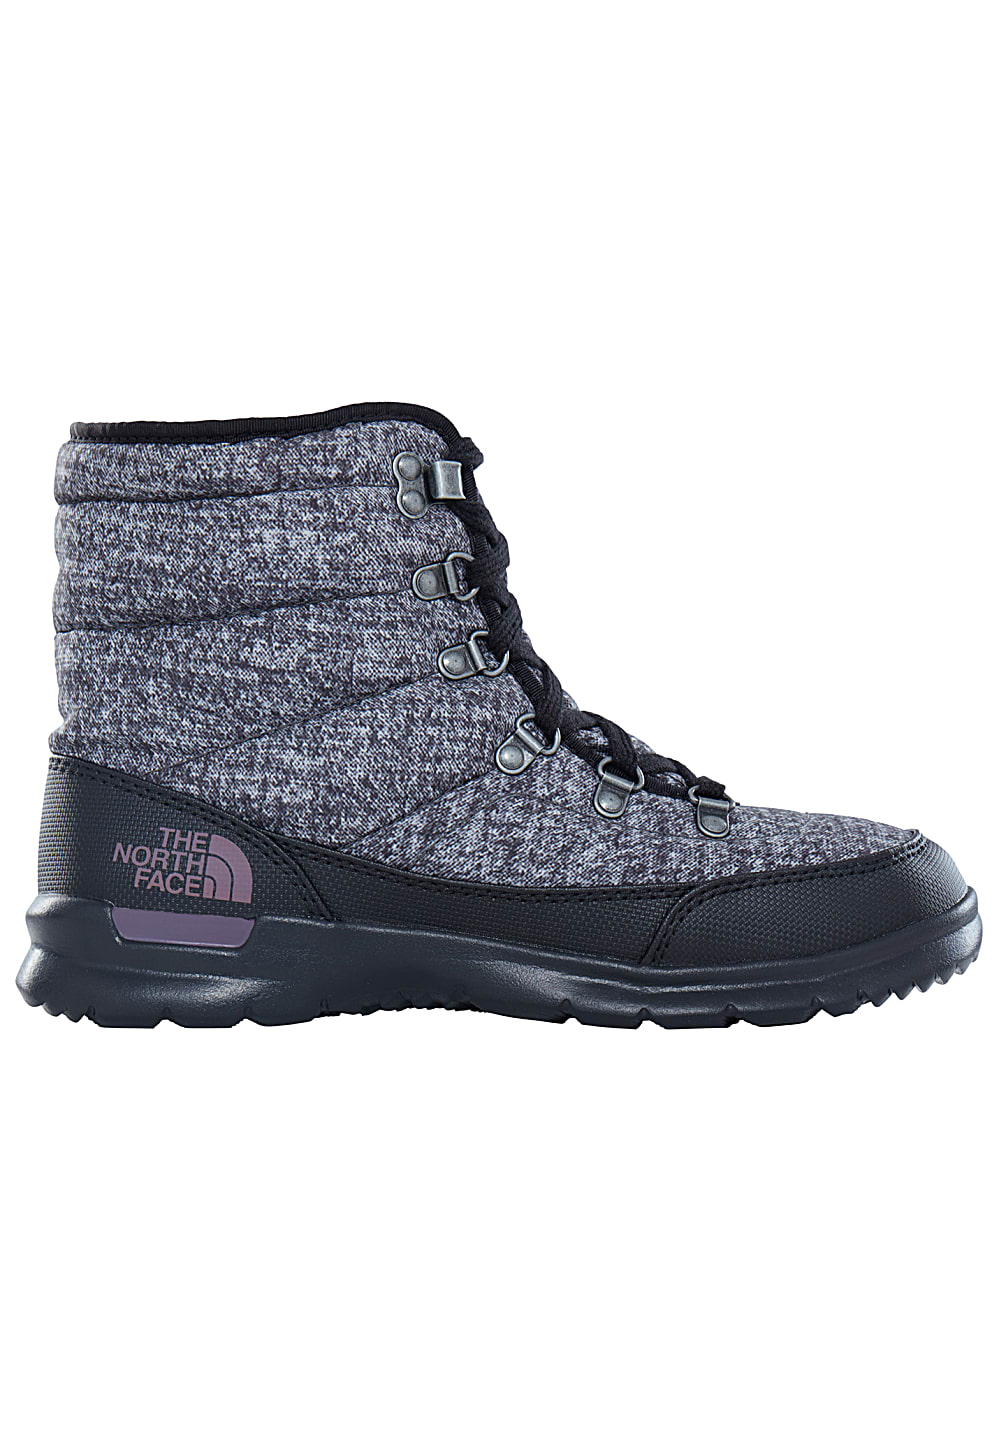 The North Face Thermoball Lace II Bergschuhe für Damen Grau